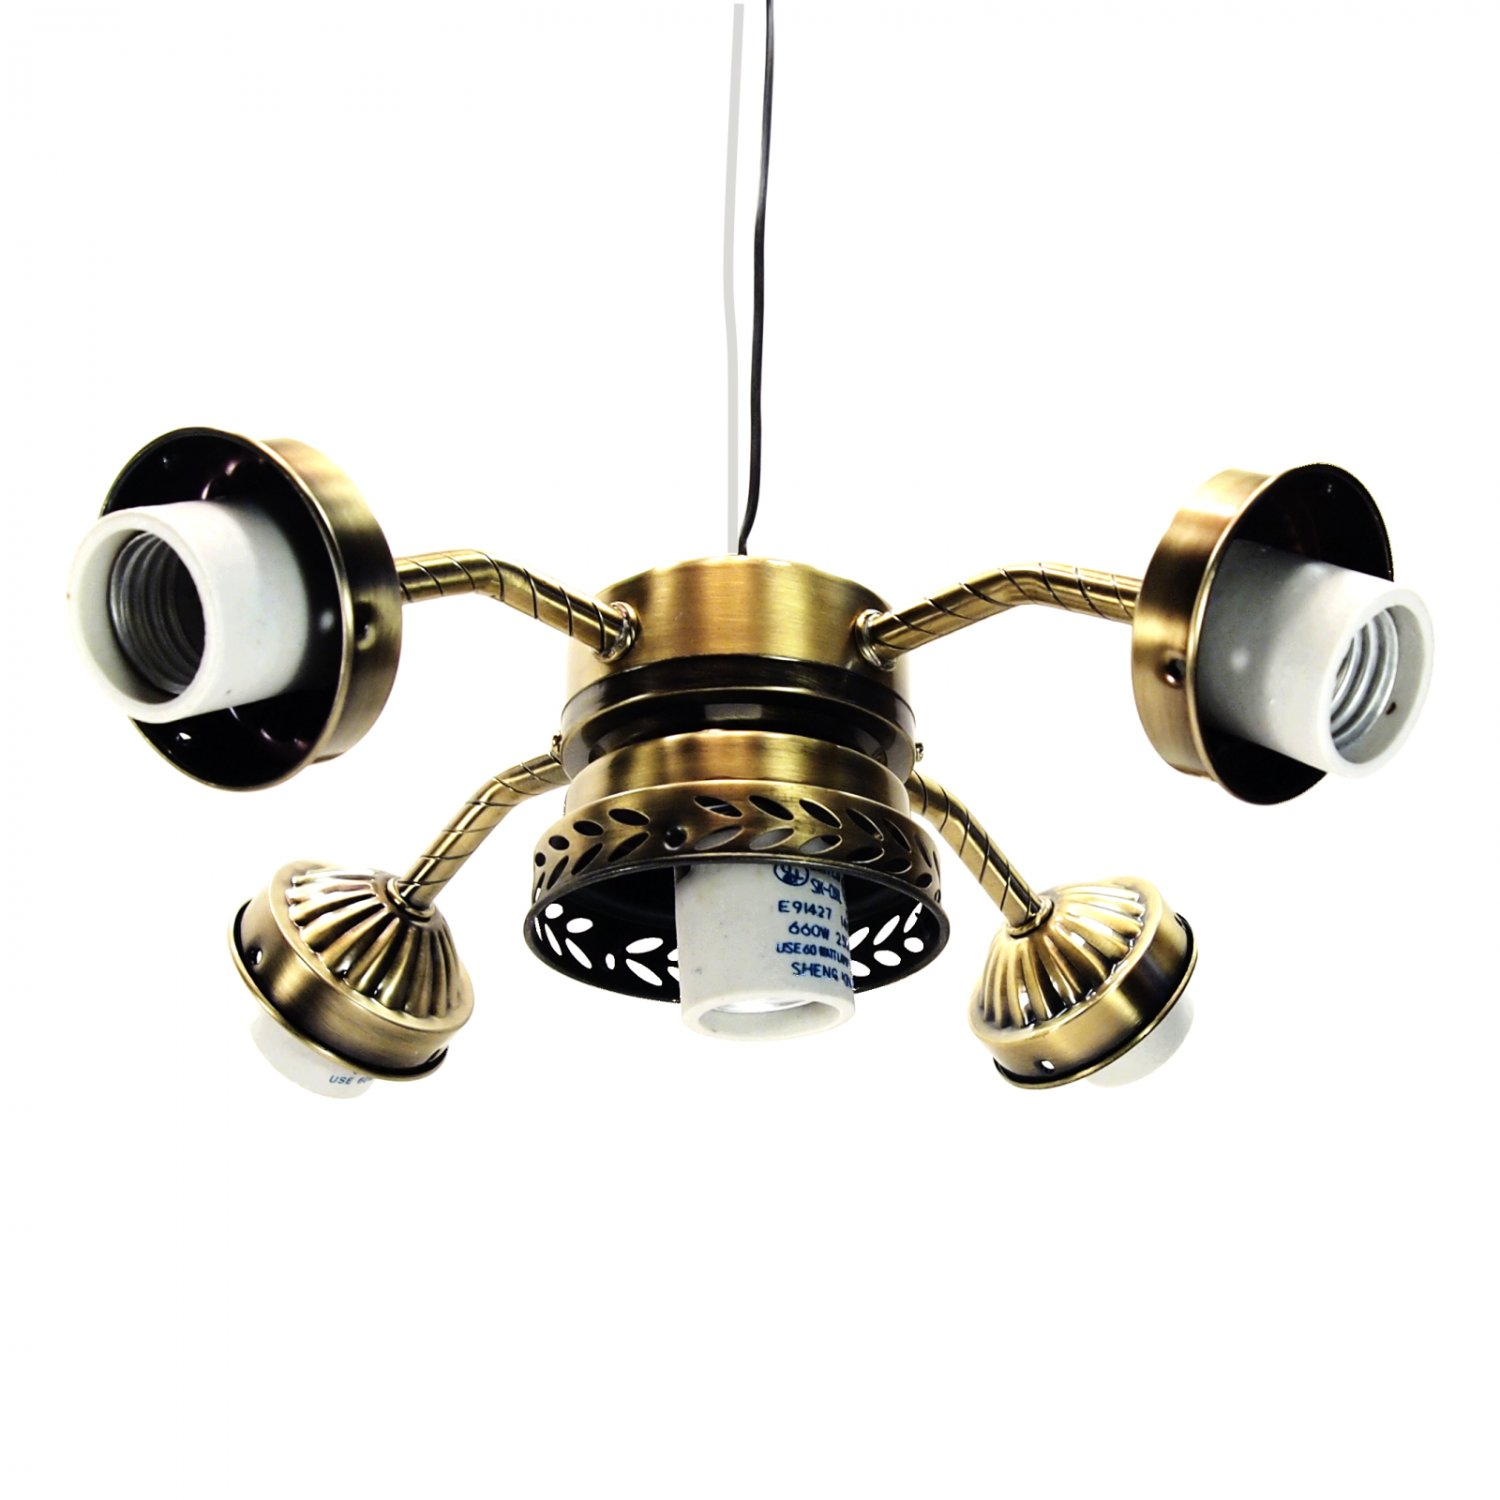 Hunter Allendale 52 Antique Brass Ceiling Fan At Menards: Antique Brass Ceiling Fan Light Kit